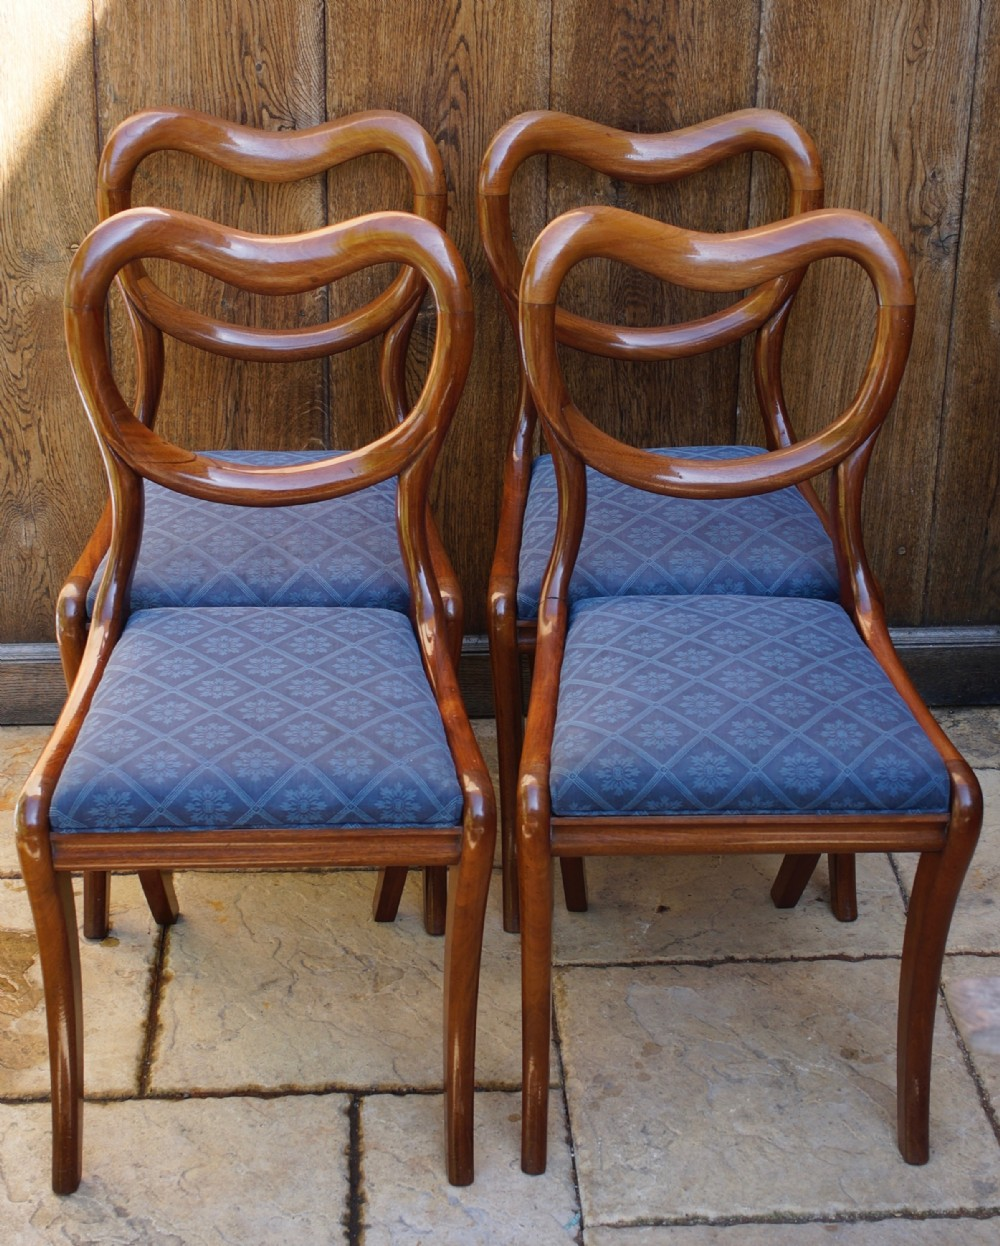 set of 4 1830s solid mahogany sabre legged dining chairs with kidney shaped backs